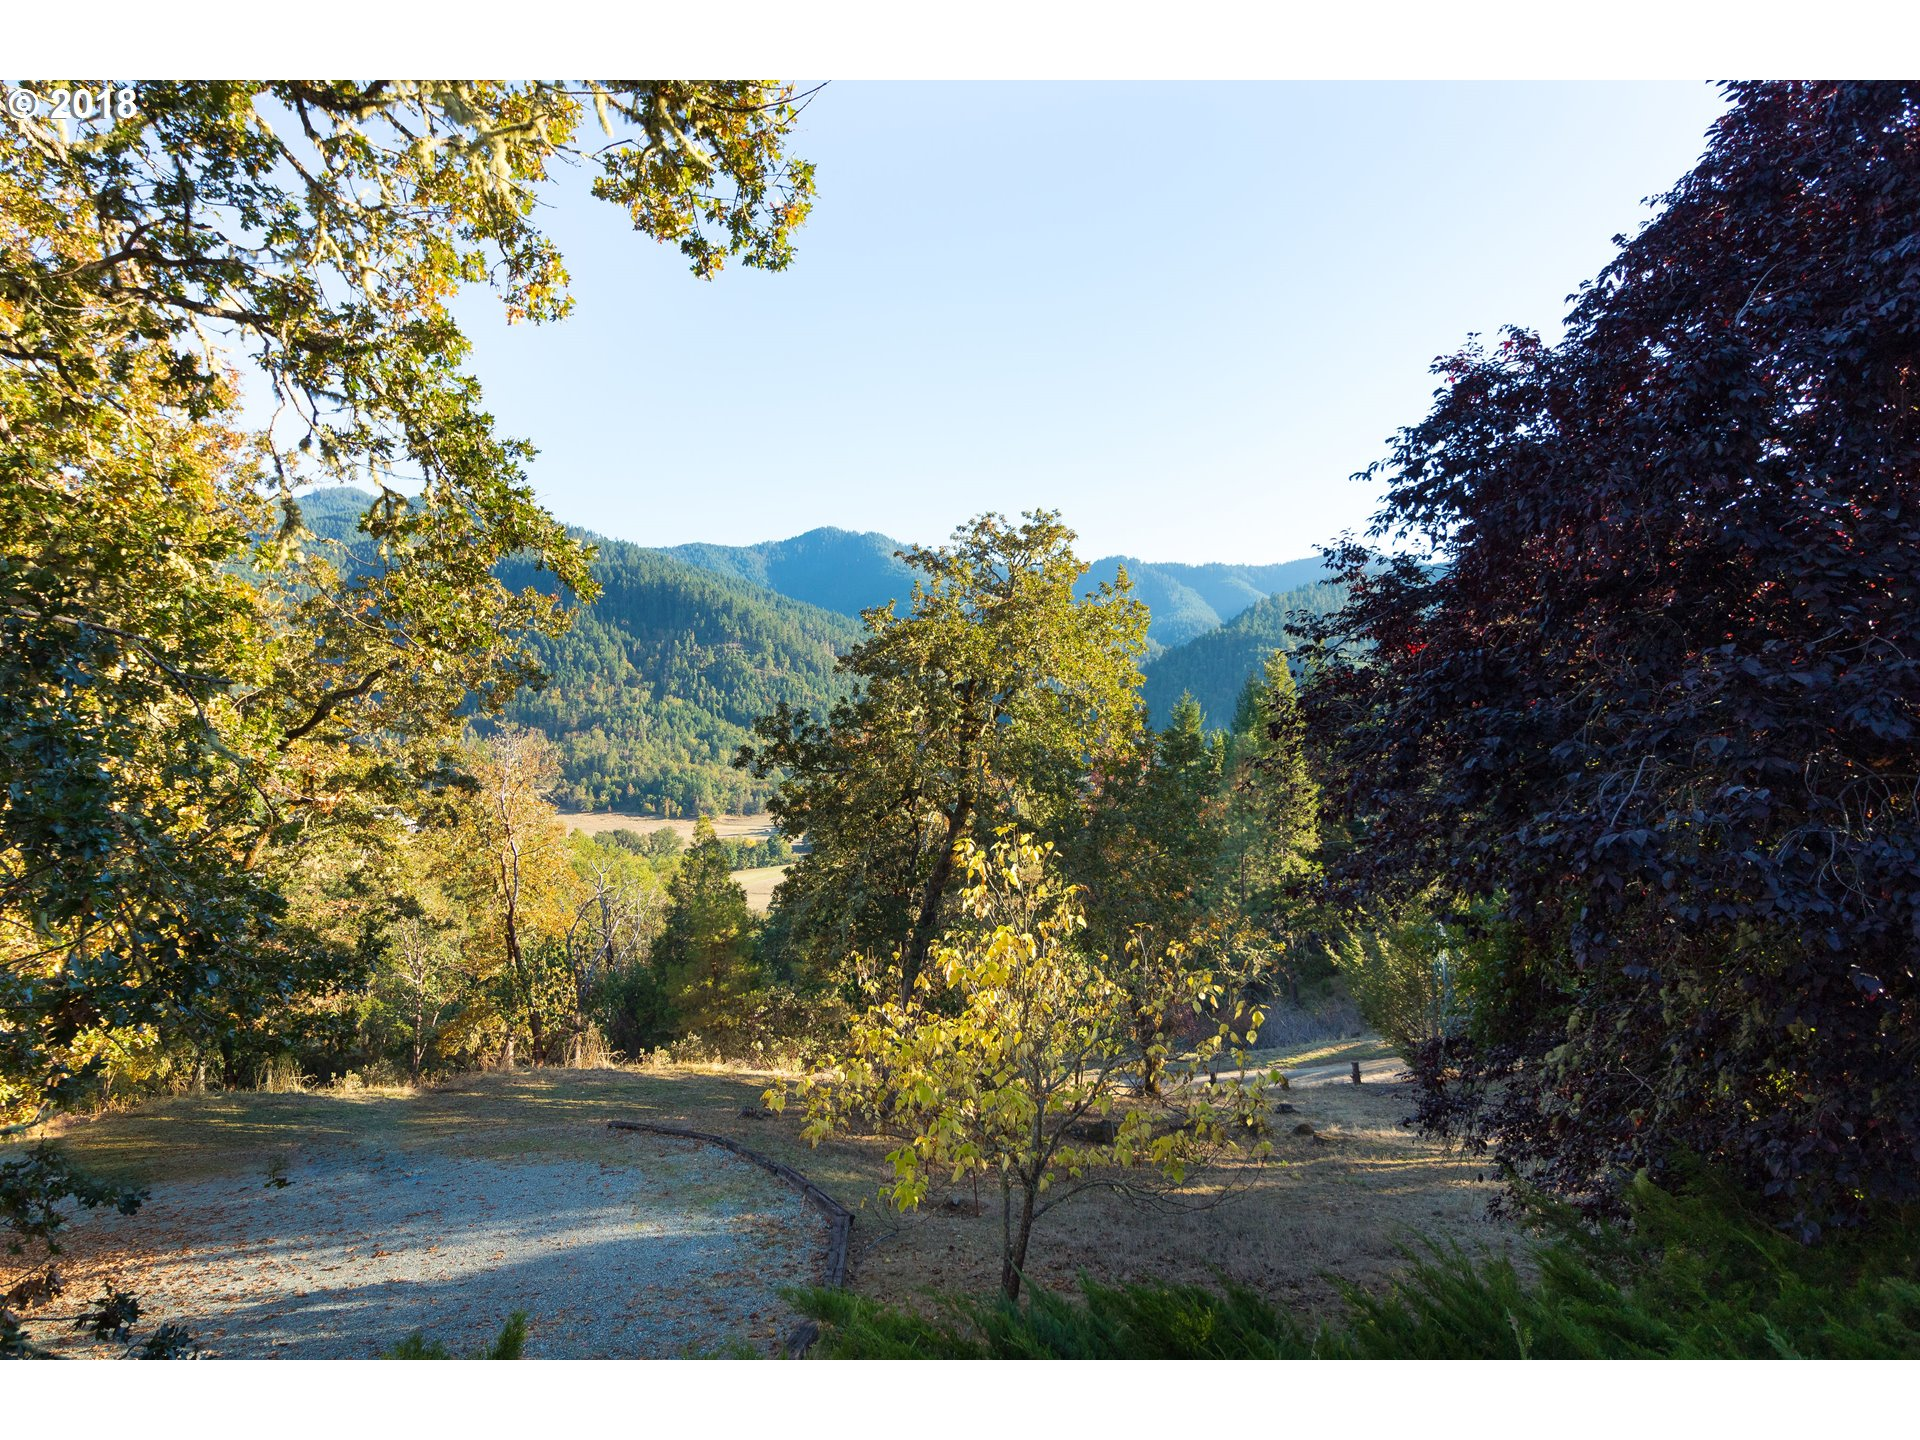 559 THOMPSON RD Riddle, OR 97469 - MLS #: 18511019